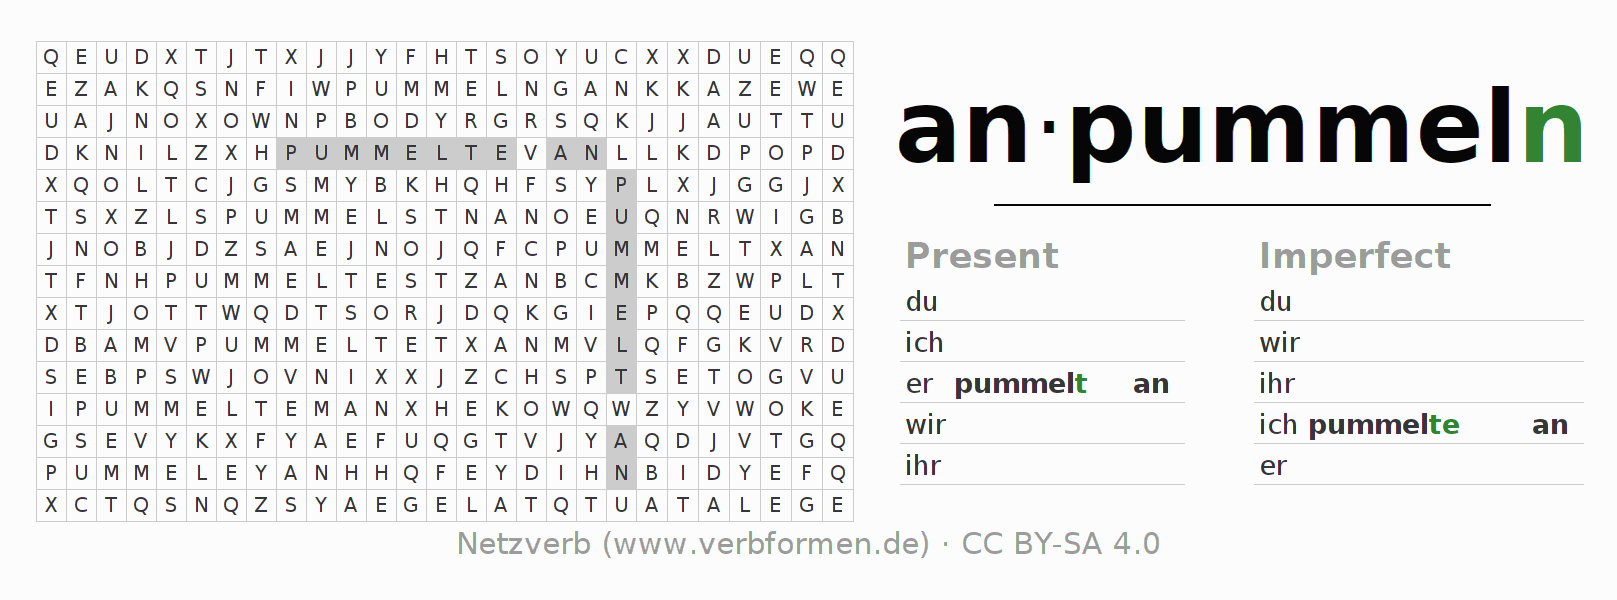 Word search puzzle for the conjugation of the verb anpummeln